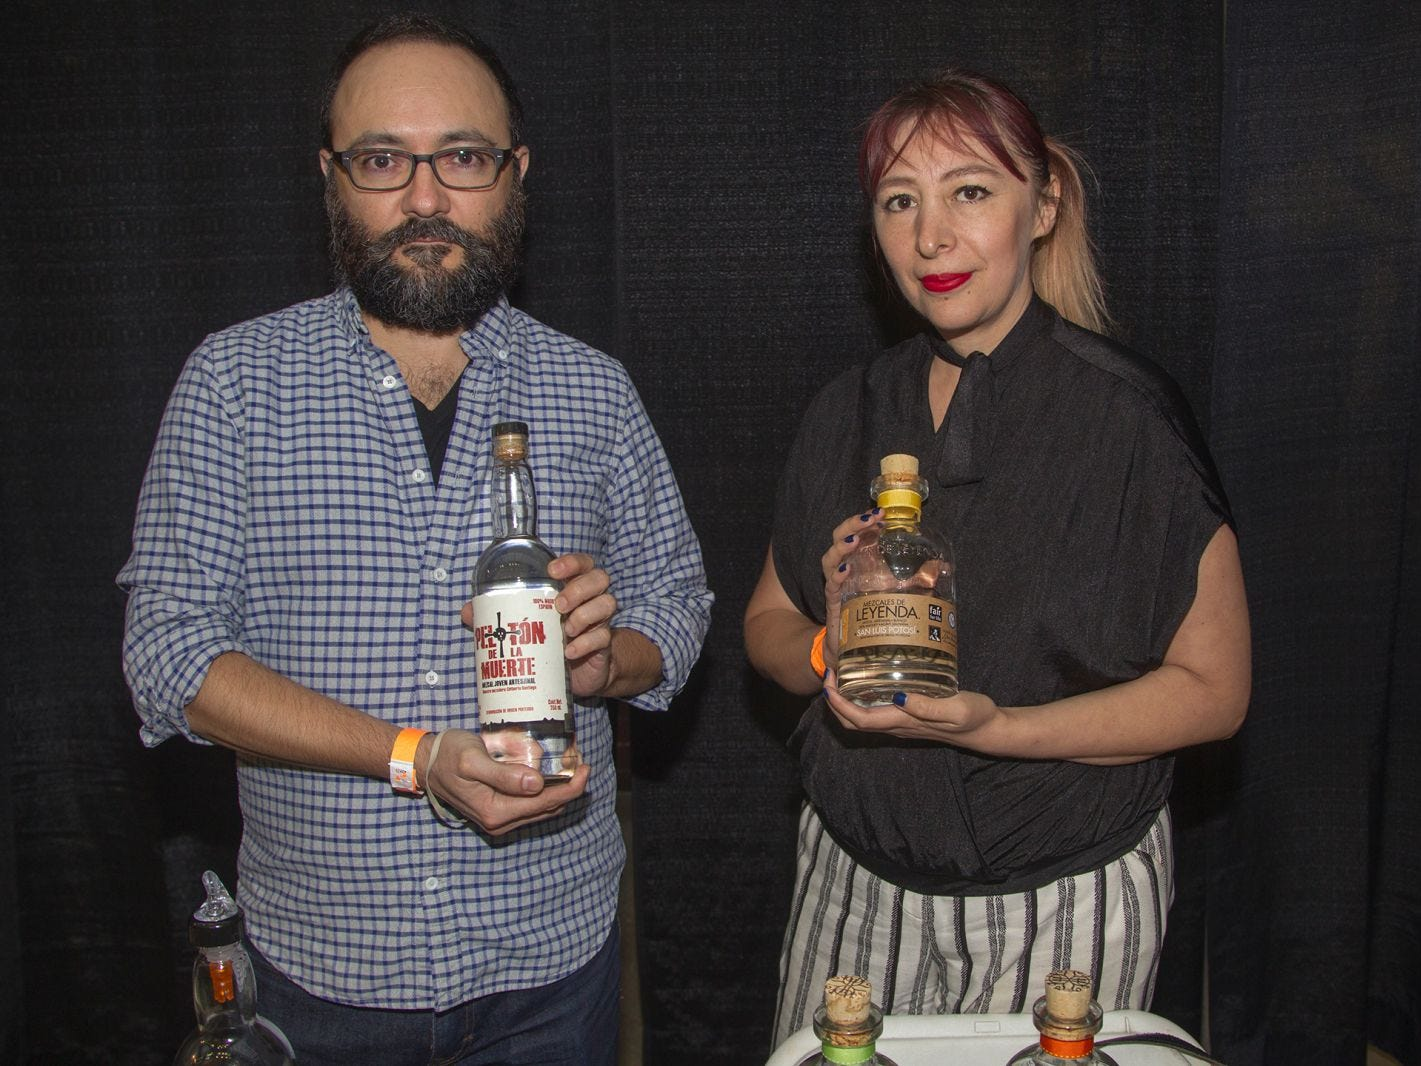 Mezcales De Leyenda - Benjamin and Issel. Jersey City Craft Distillery Fest at the Harborside Atrium featured more than 100 styles of spirits. Guests had the chance to taste craft-distilled spirits from moonshine, rum, cognac, whiskey, vodka, gin, tequila and more. 09/08/2018